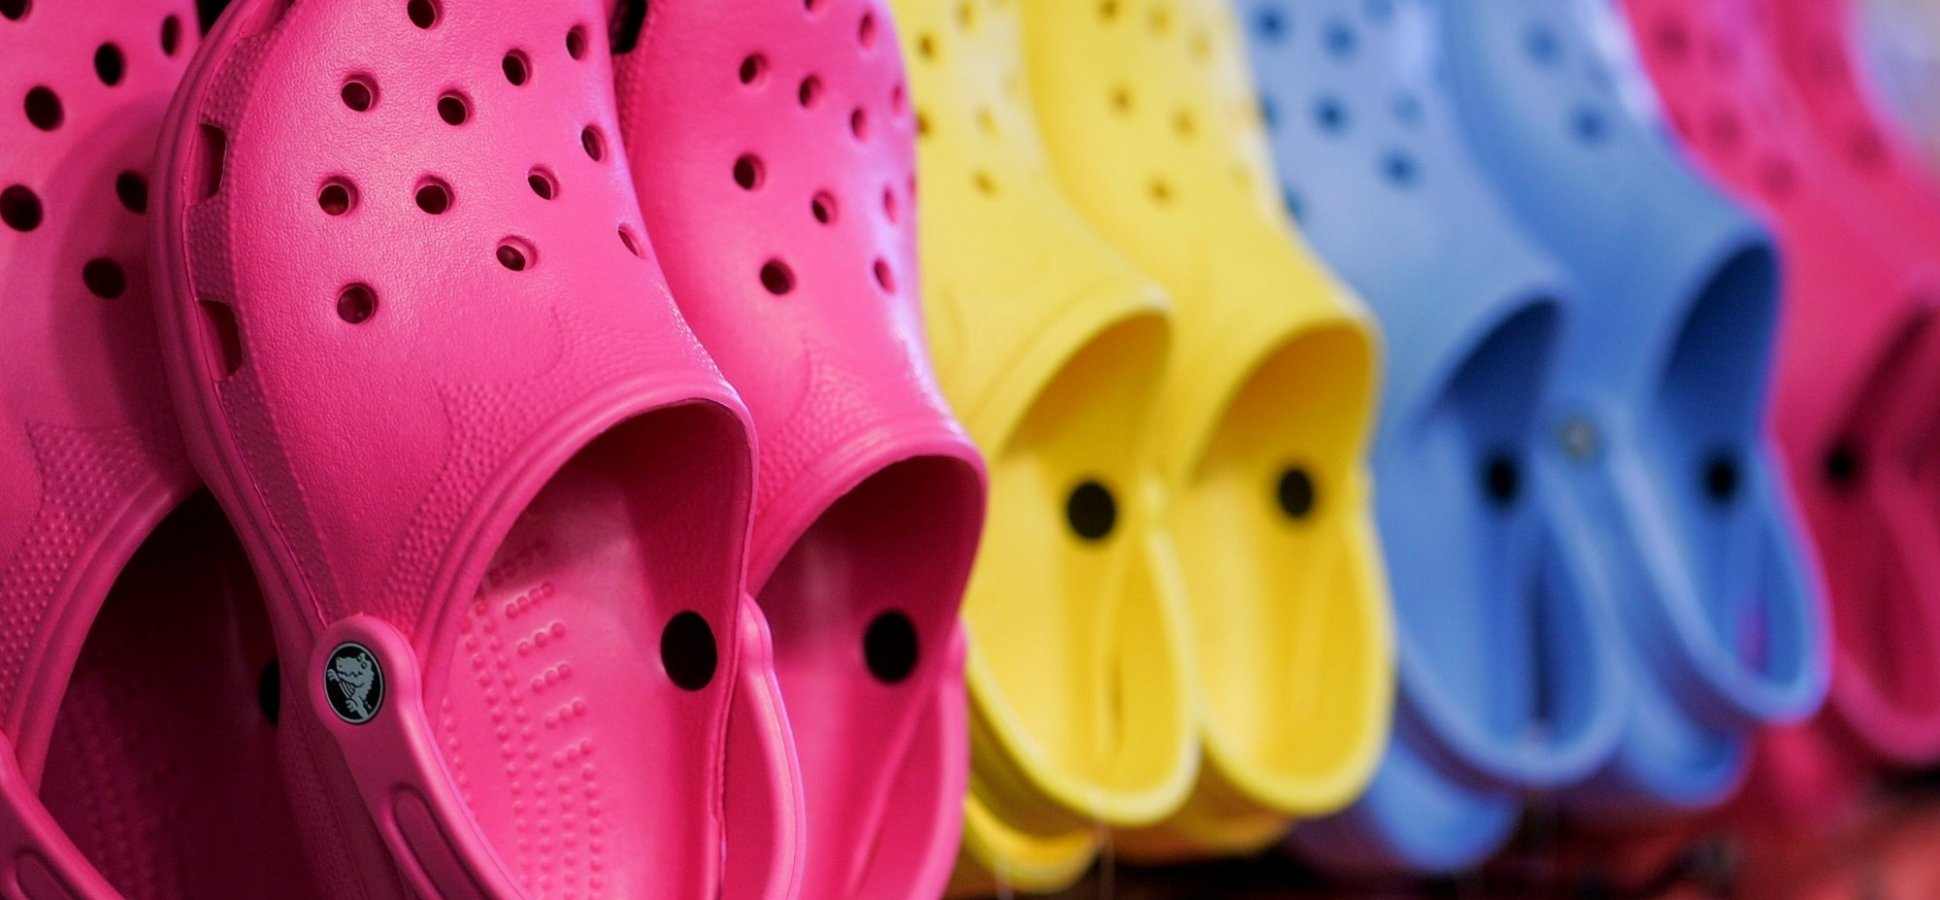 912614c074c22 Crocs Just Debuted High Heels. Here's Why They're Flying Off Shelves |  Inc.com